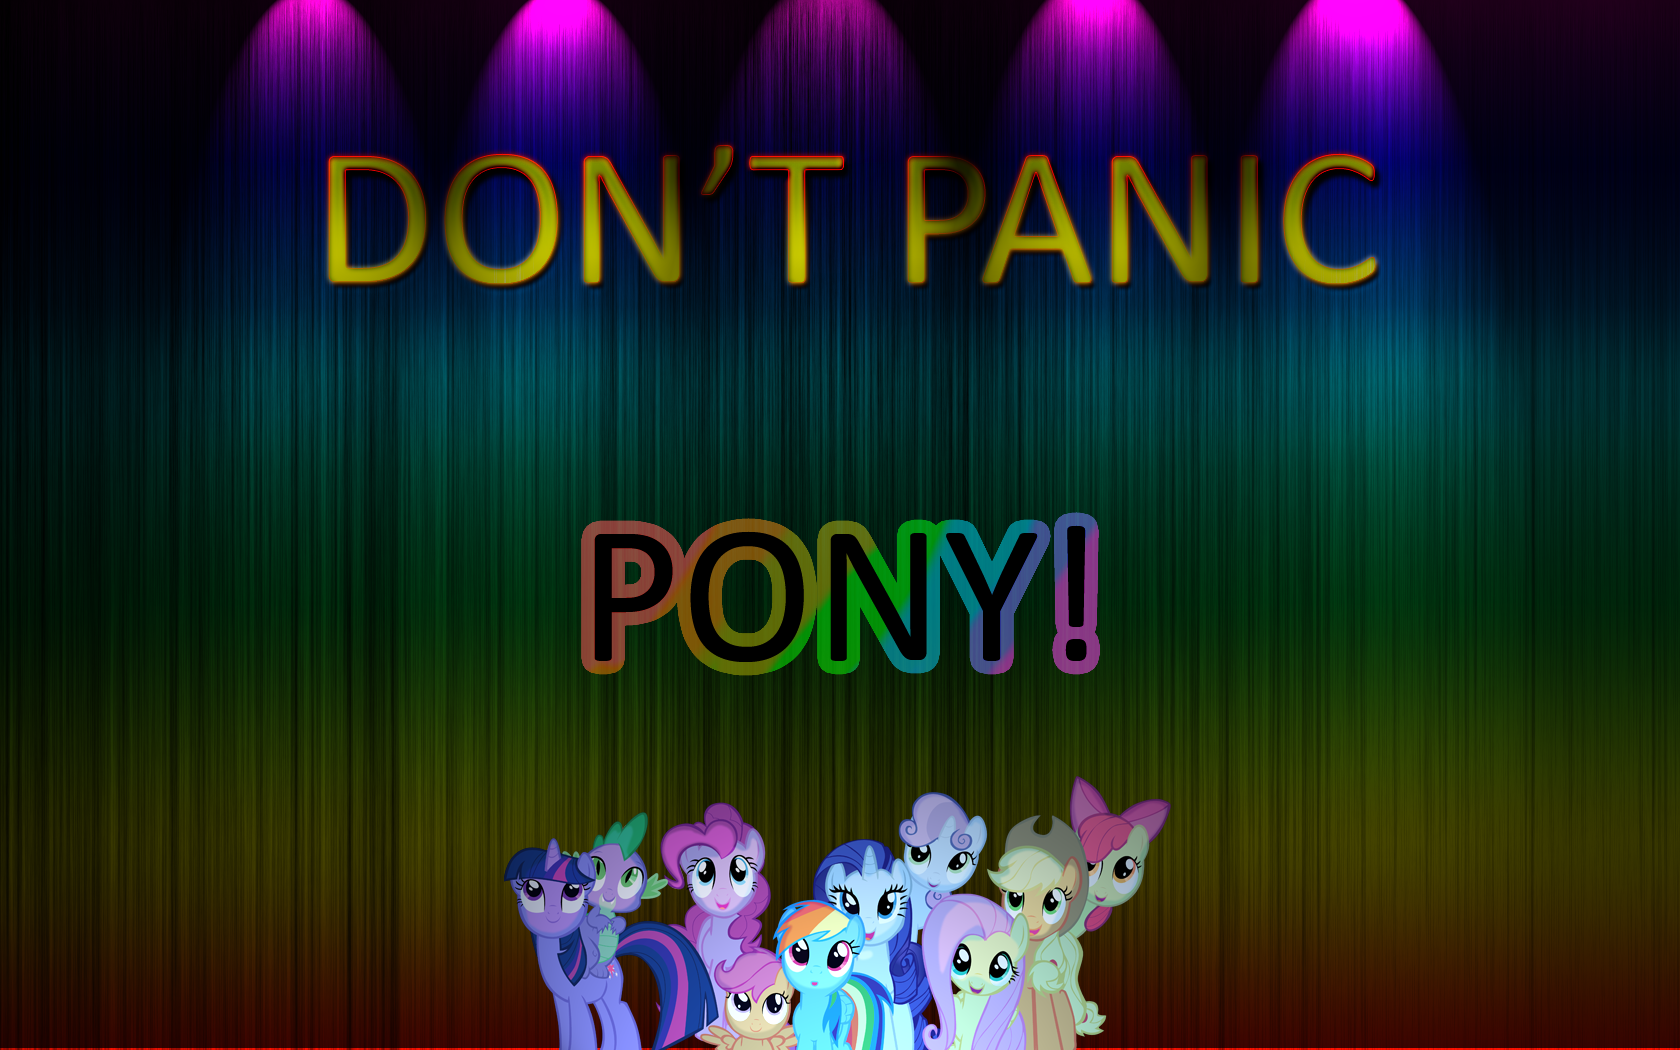 Don't panic:Pony by F-Frost